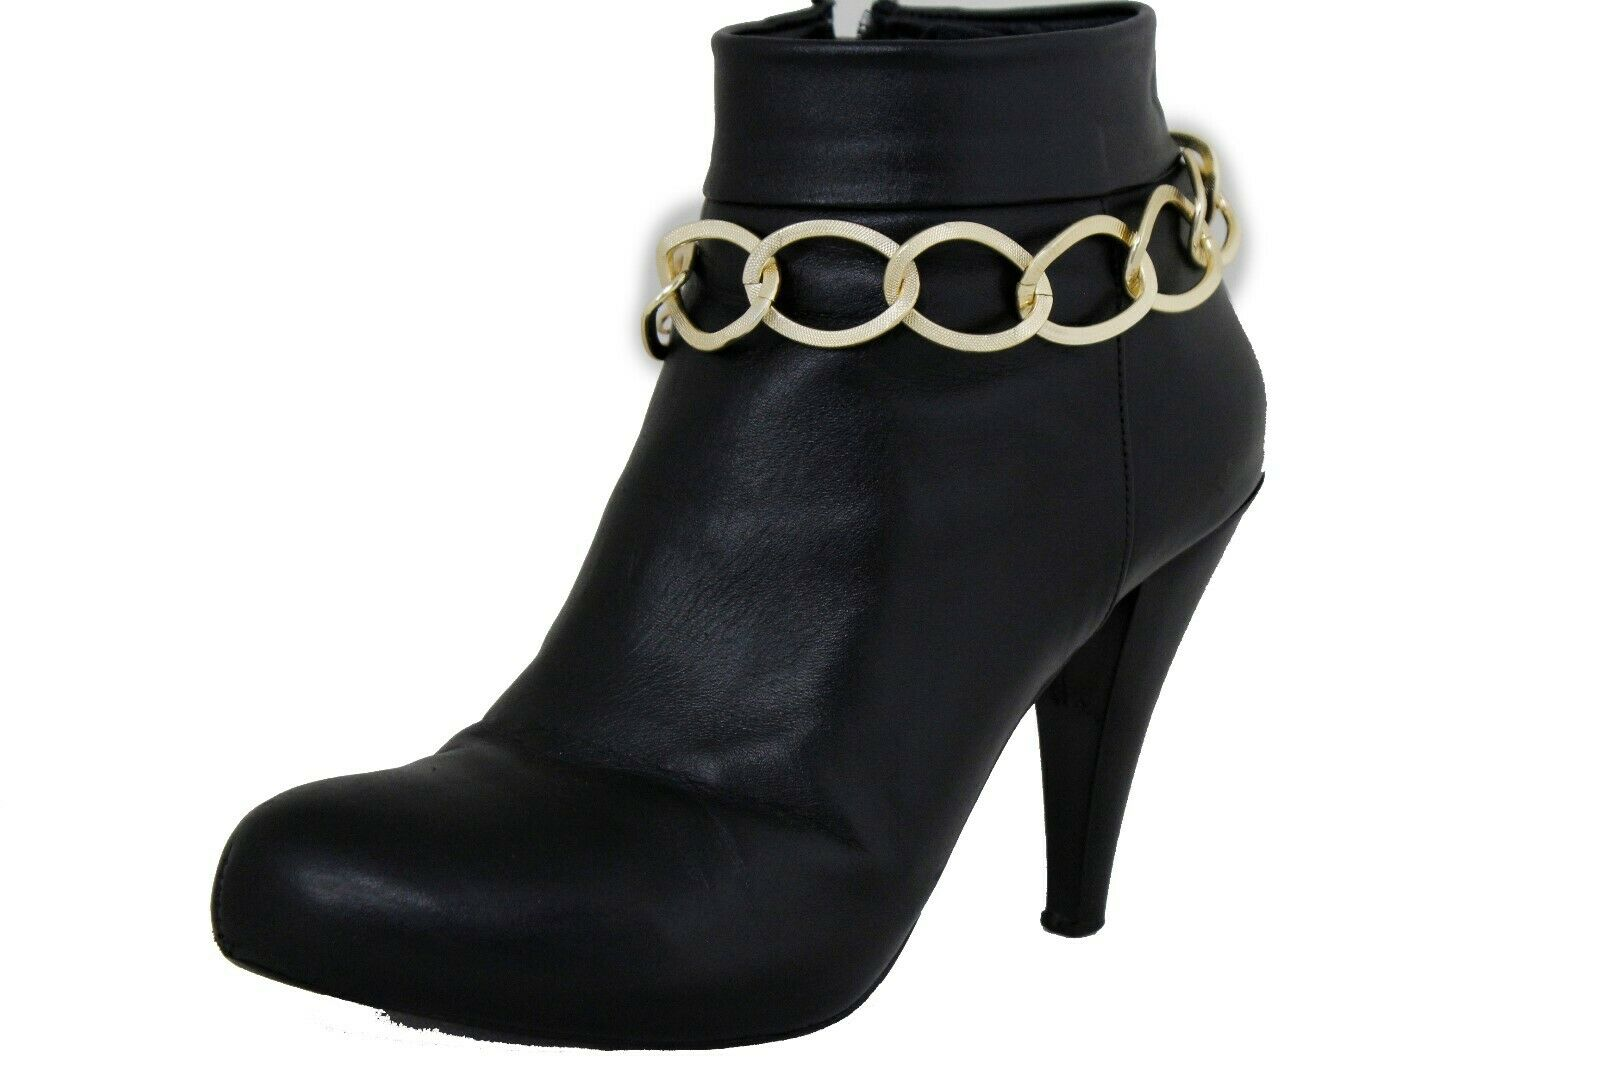 Women Fashion Jewelry Boot Bracelet Gold Metal Chain Thick Link Bling Shoe Charm